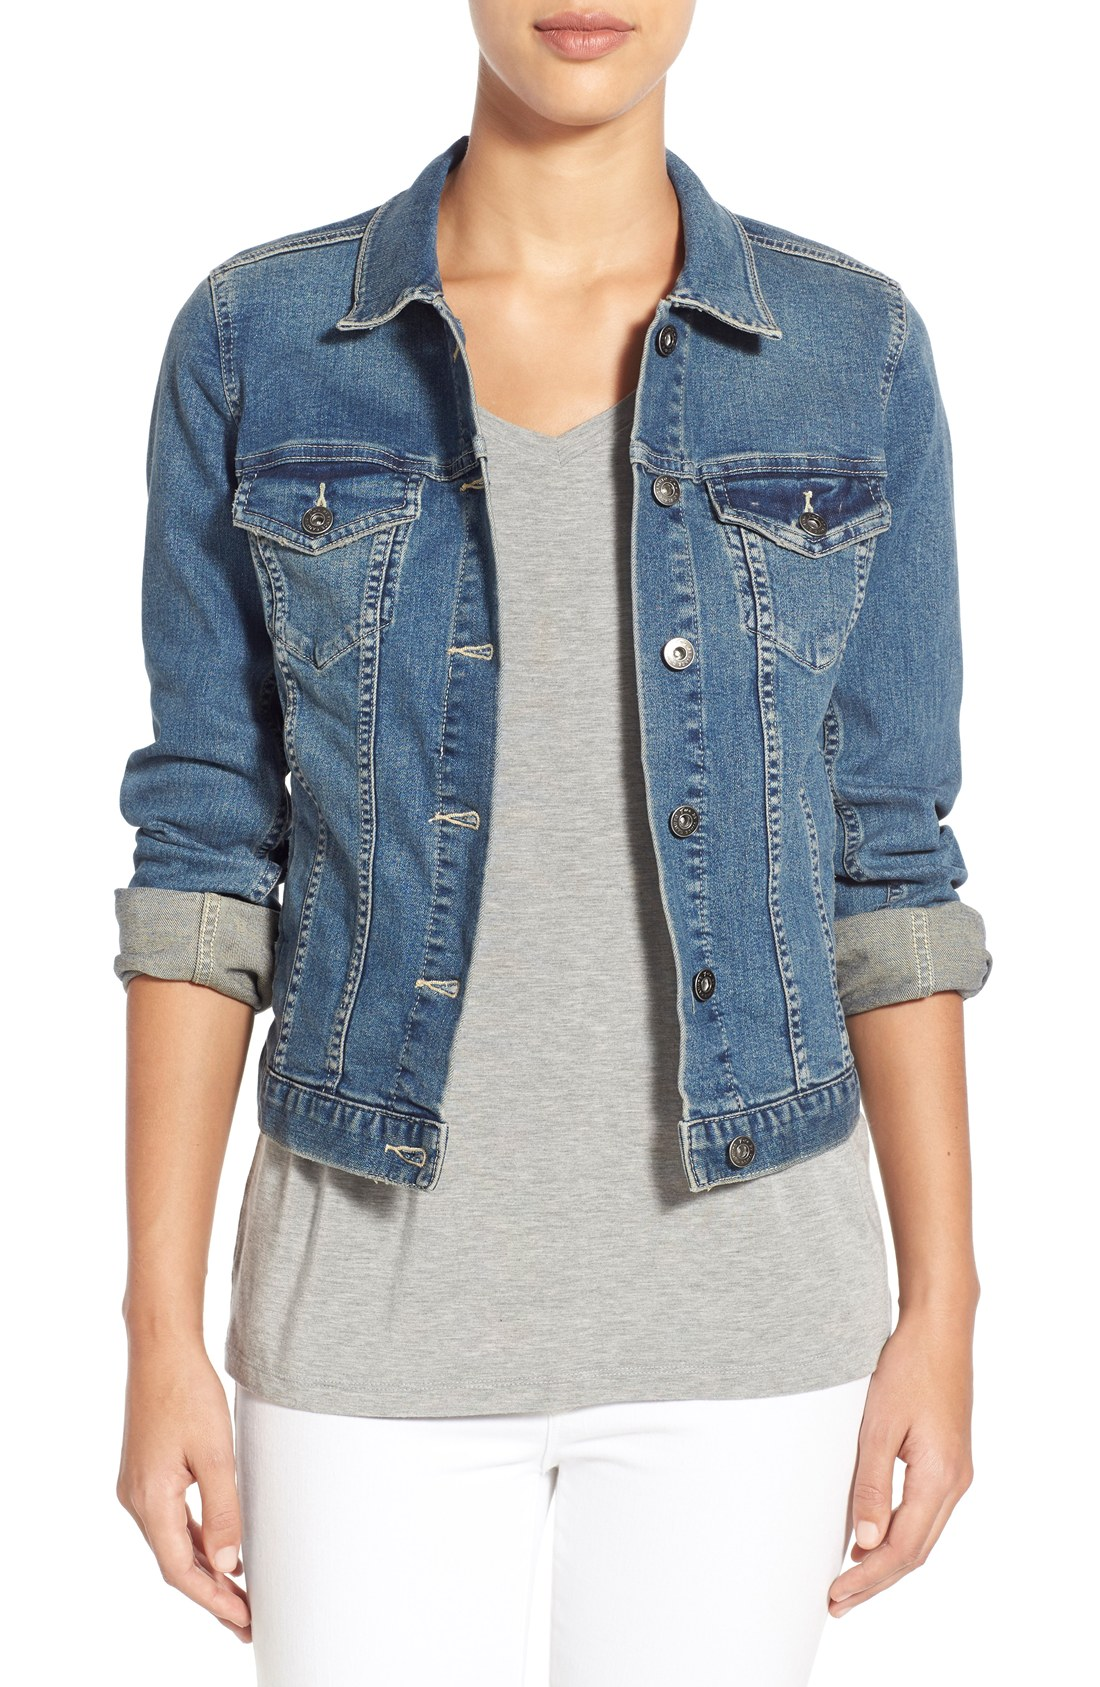 Jean Jackets for Women – The Best Ways to Wear Them – careyfashion.com